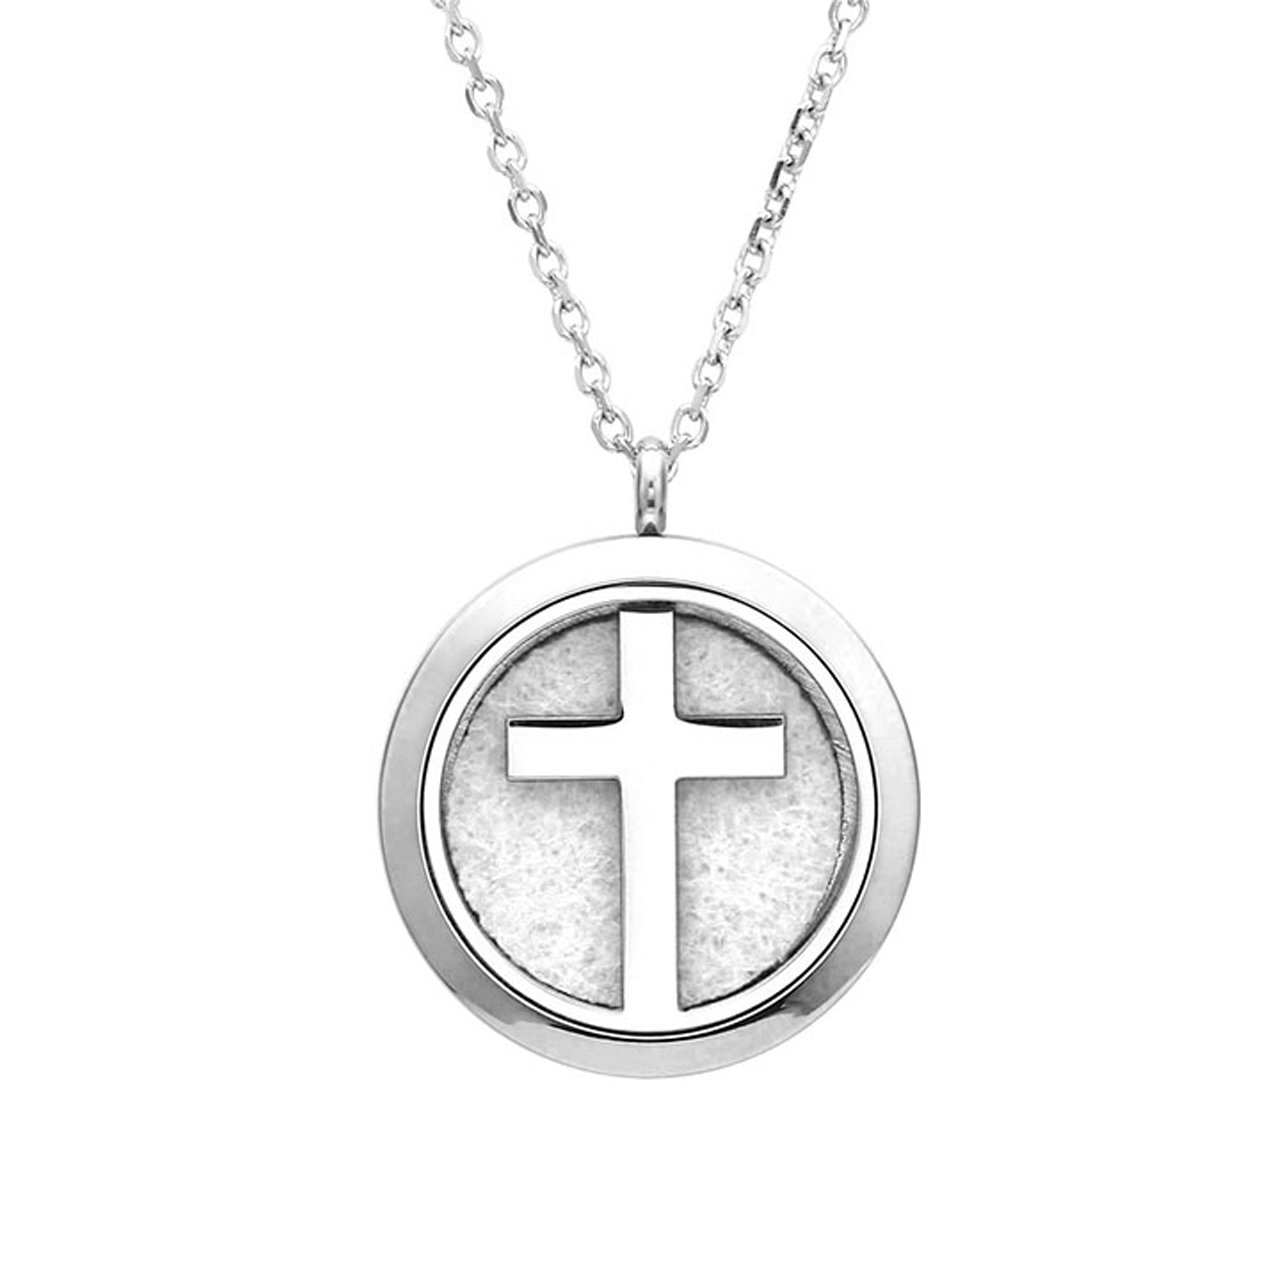 Zysta Essential Oil Diffuser Jesus Cross Necklace - Fragrance Aromatherapy Perfume Pendant Stainless Steel Locket with 6 Refill Pads and 24 Inch Chain